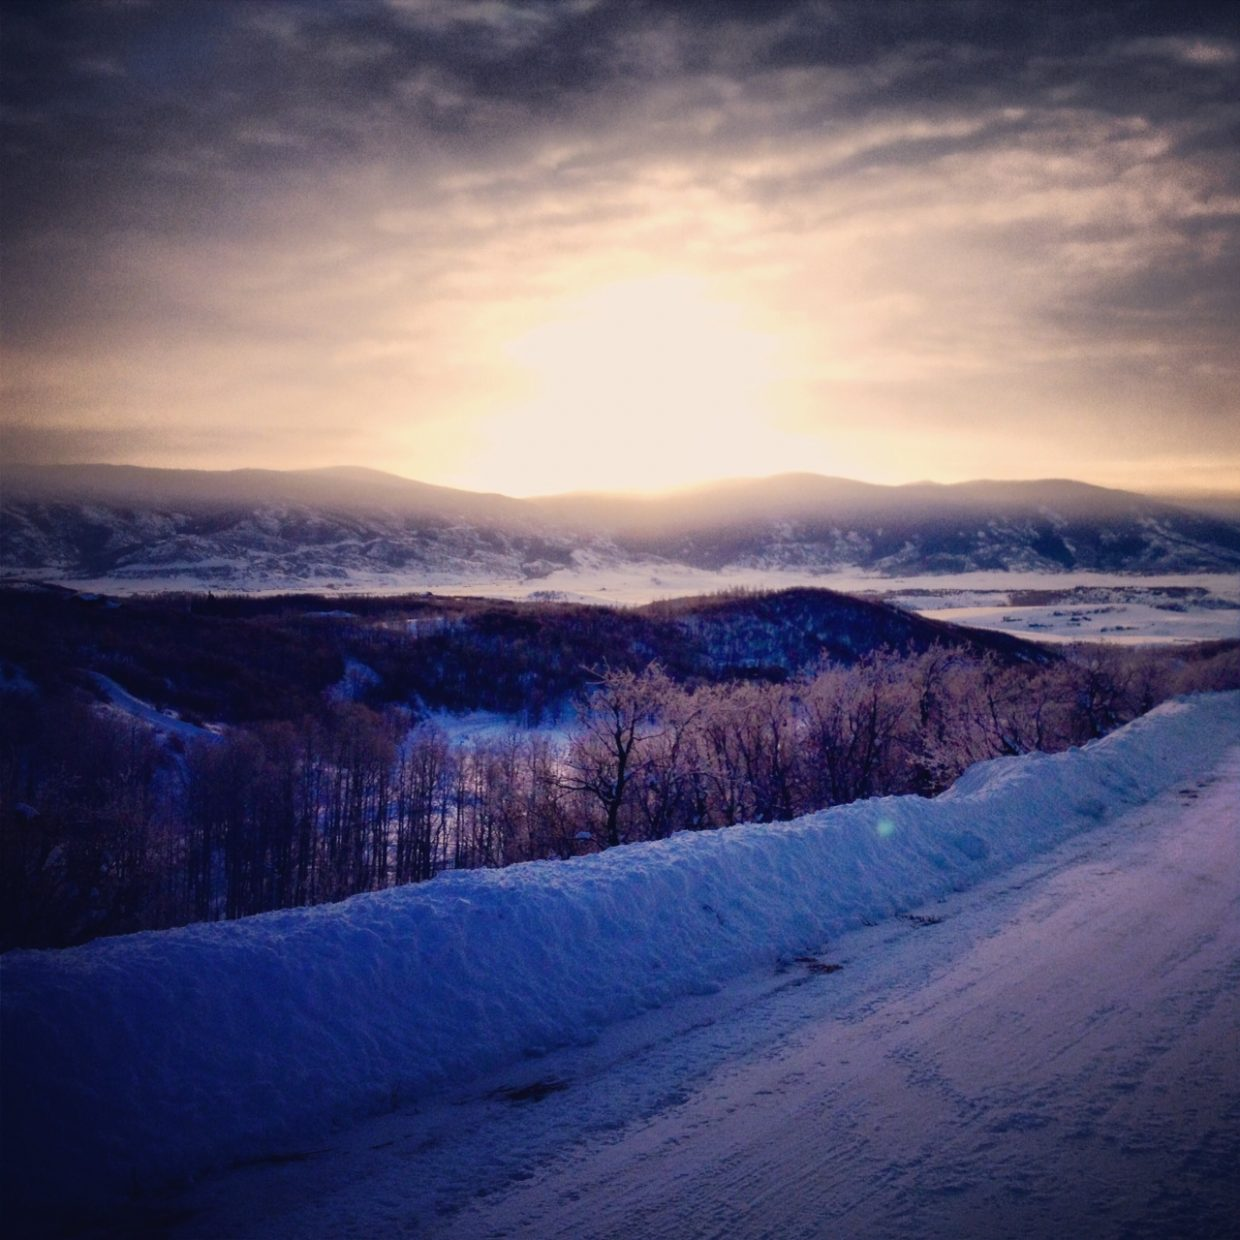 On the way to Steamboat Ski Area on Wednesday morning. Submitted by Sonia Kuldalsky.